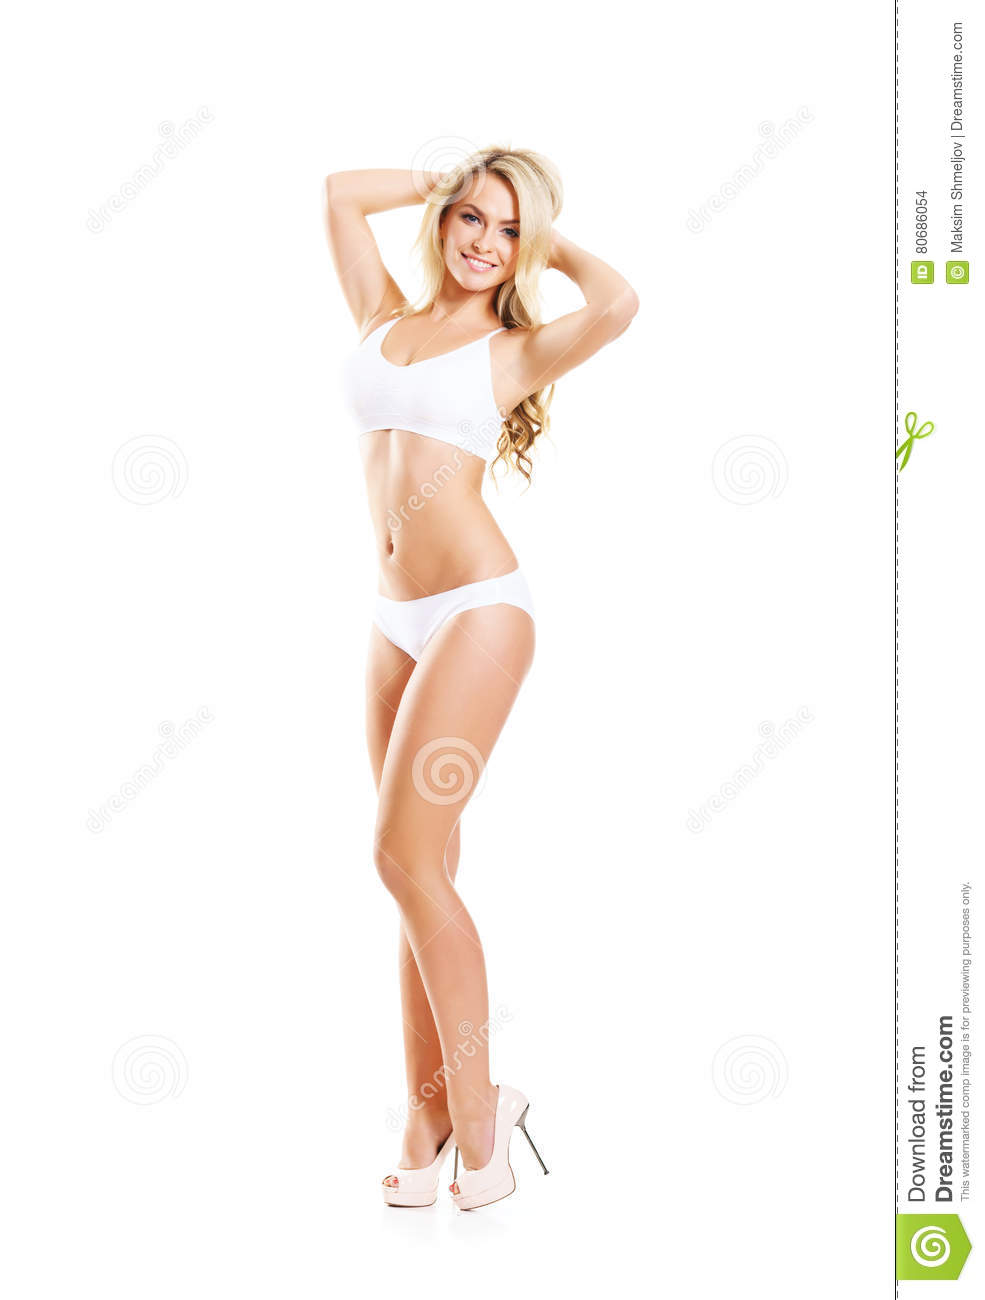 9d3f3c2d660 Fit and sporty girl in white underwear. Beautiful and healthy woman posing  over isolated white background. Sport